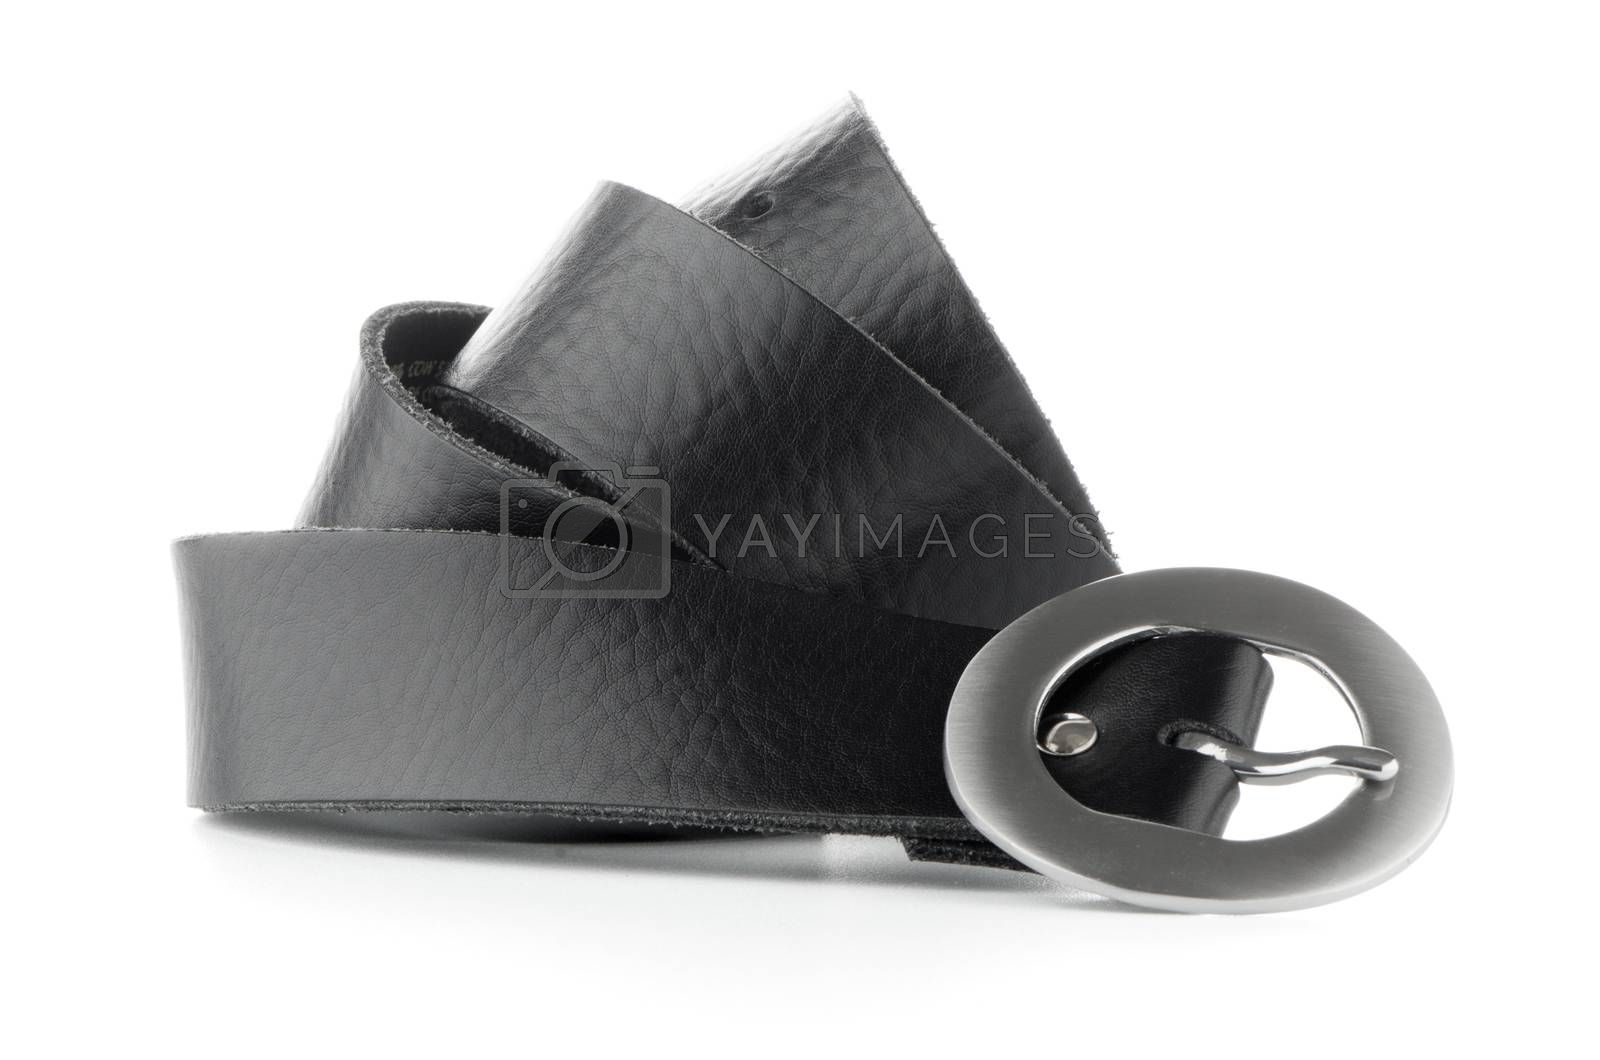 Royalty free image of Leather belt by homydesign